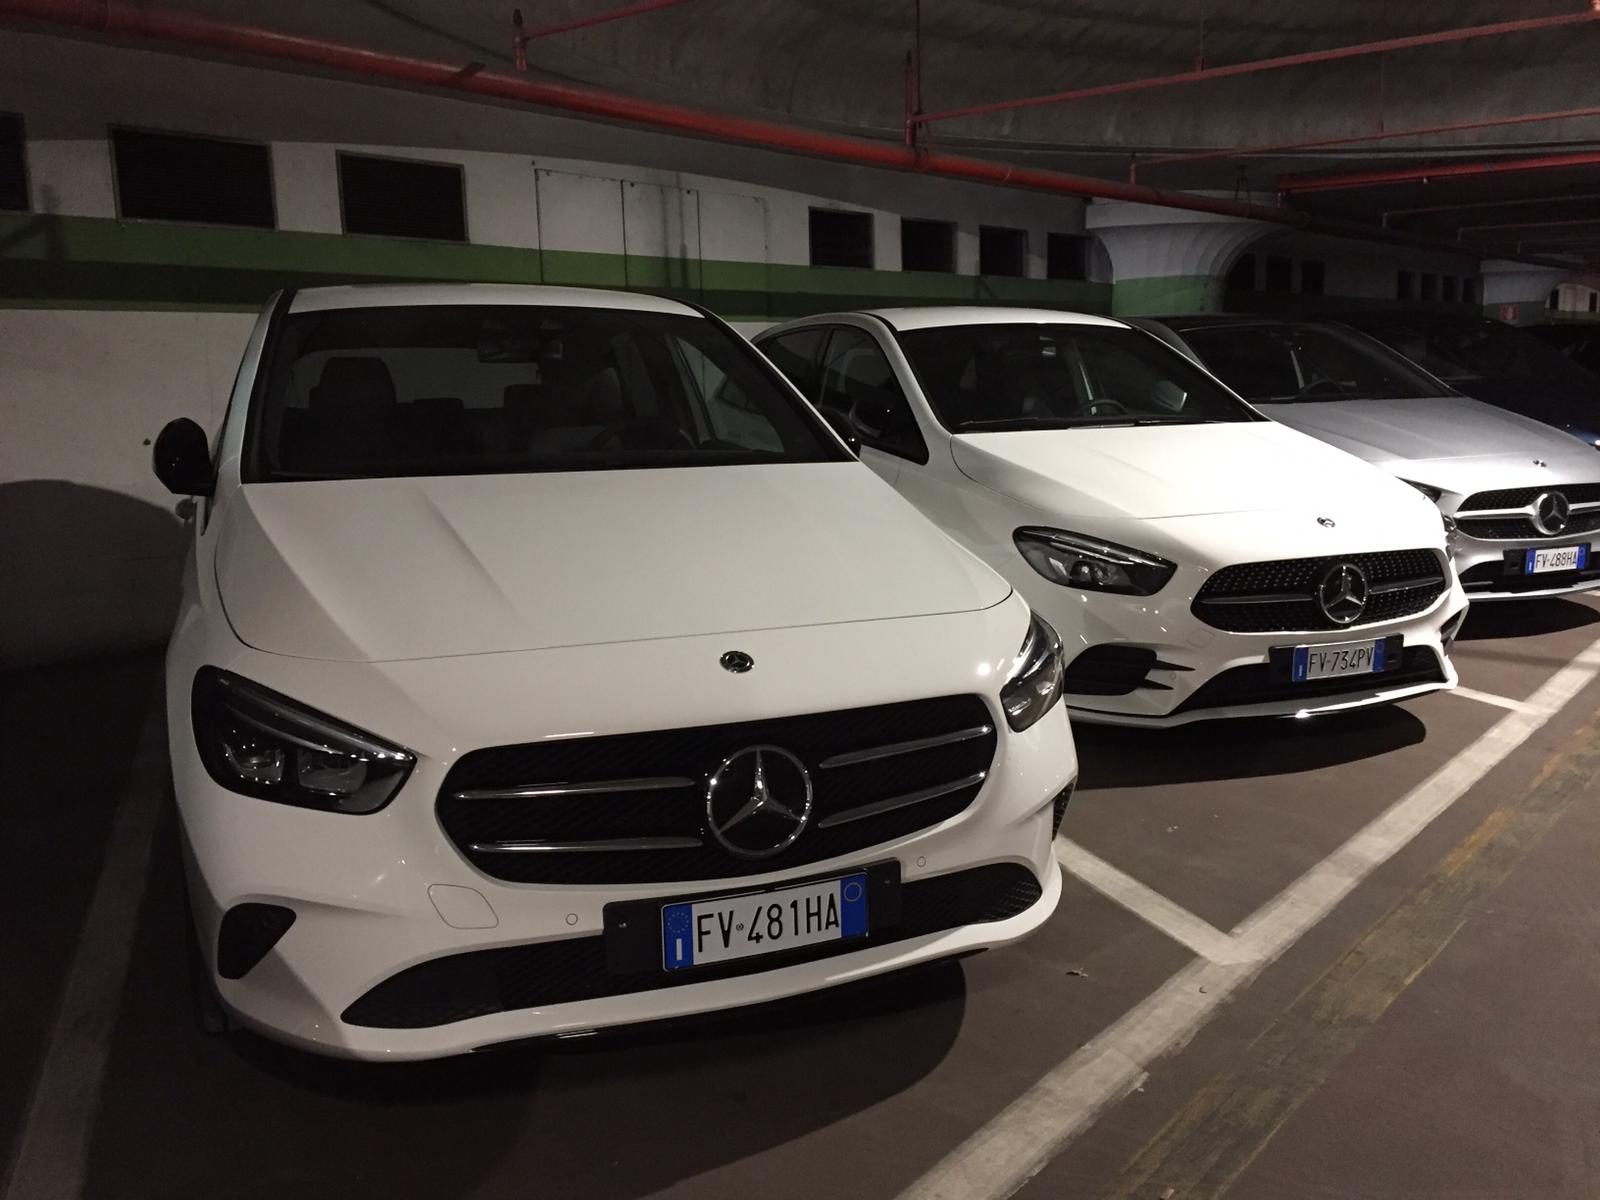 Ford Smart Mobility >> Nuova Mercedes Classe B 2019 [PHOTOGALLERY] | Fleet Magazine